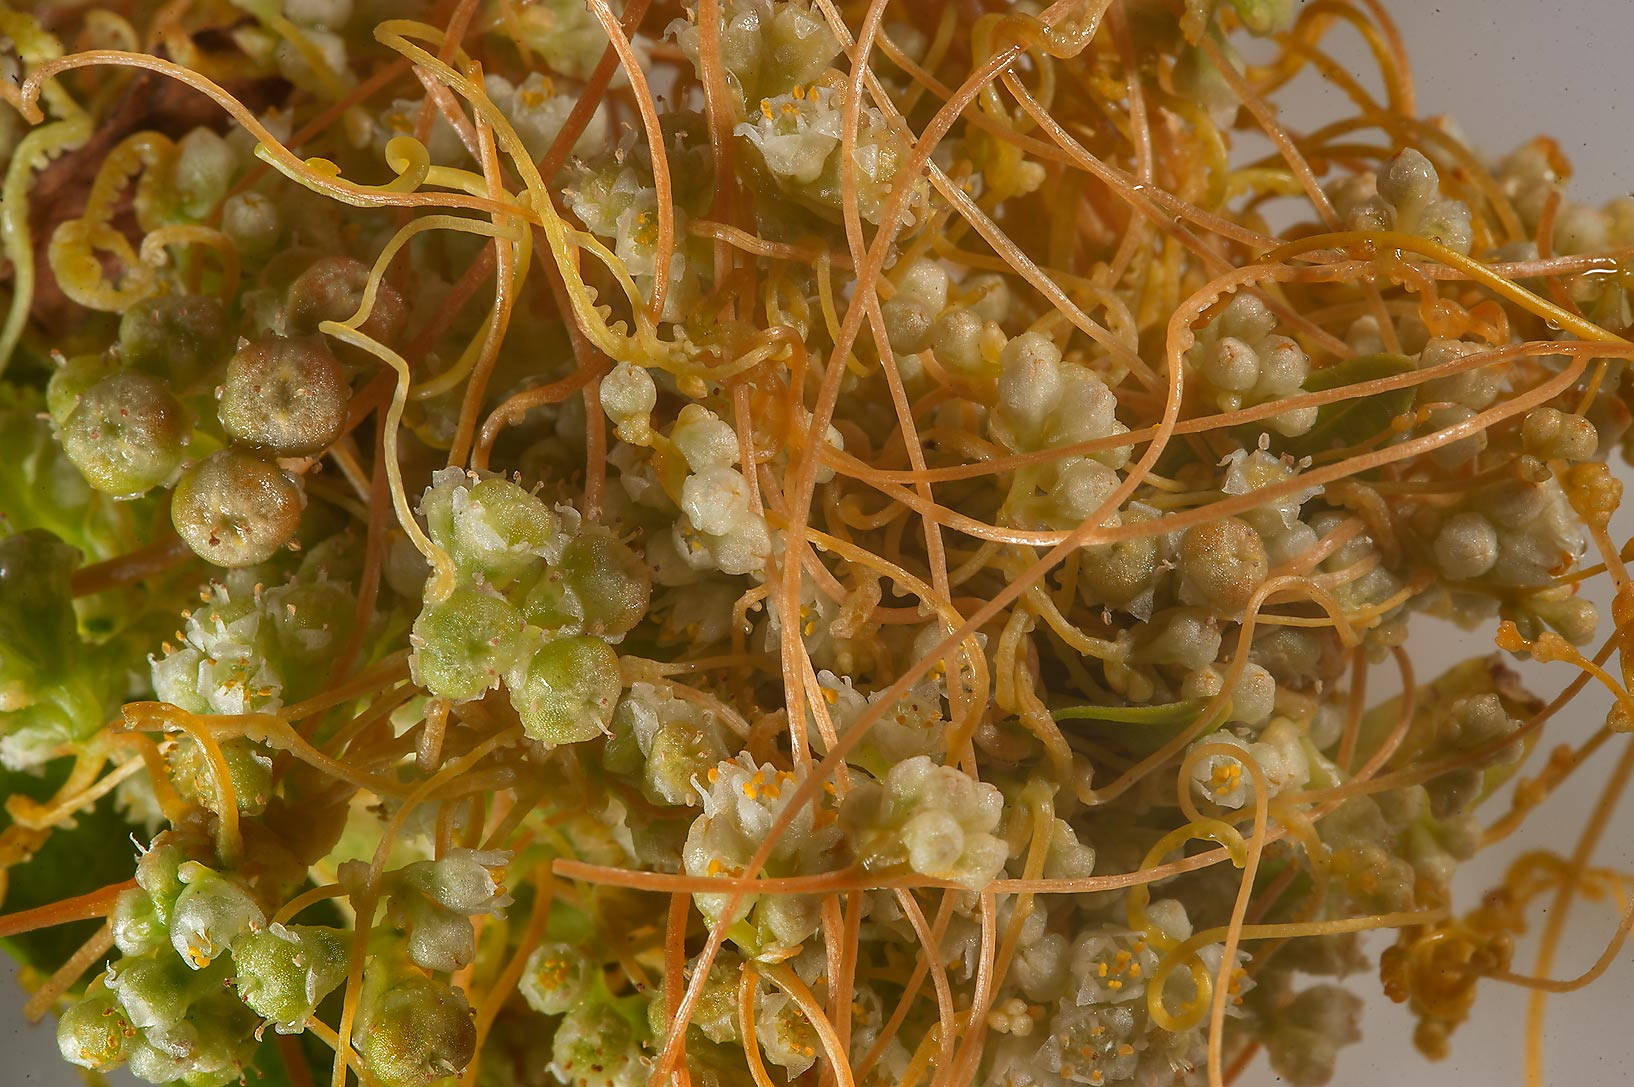 Flowers of field, or golden dodder (Cuscuta...in Irkhaya (Irkaya) Farms. Qatar